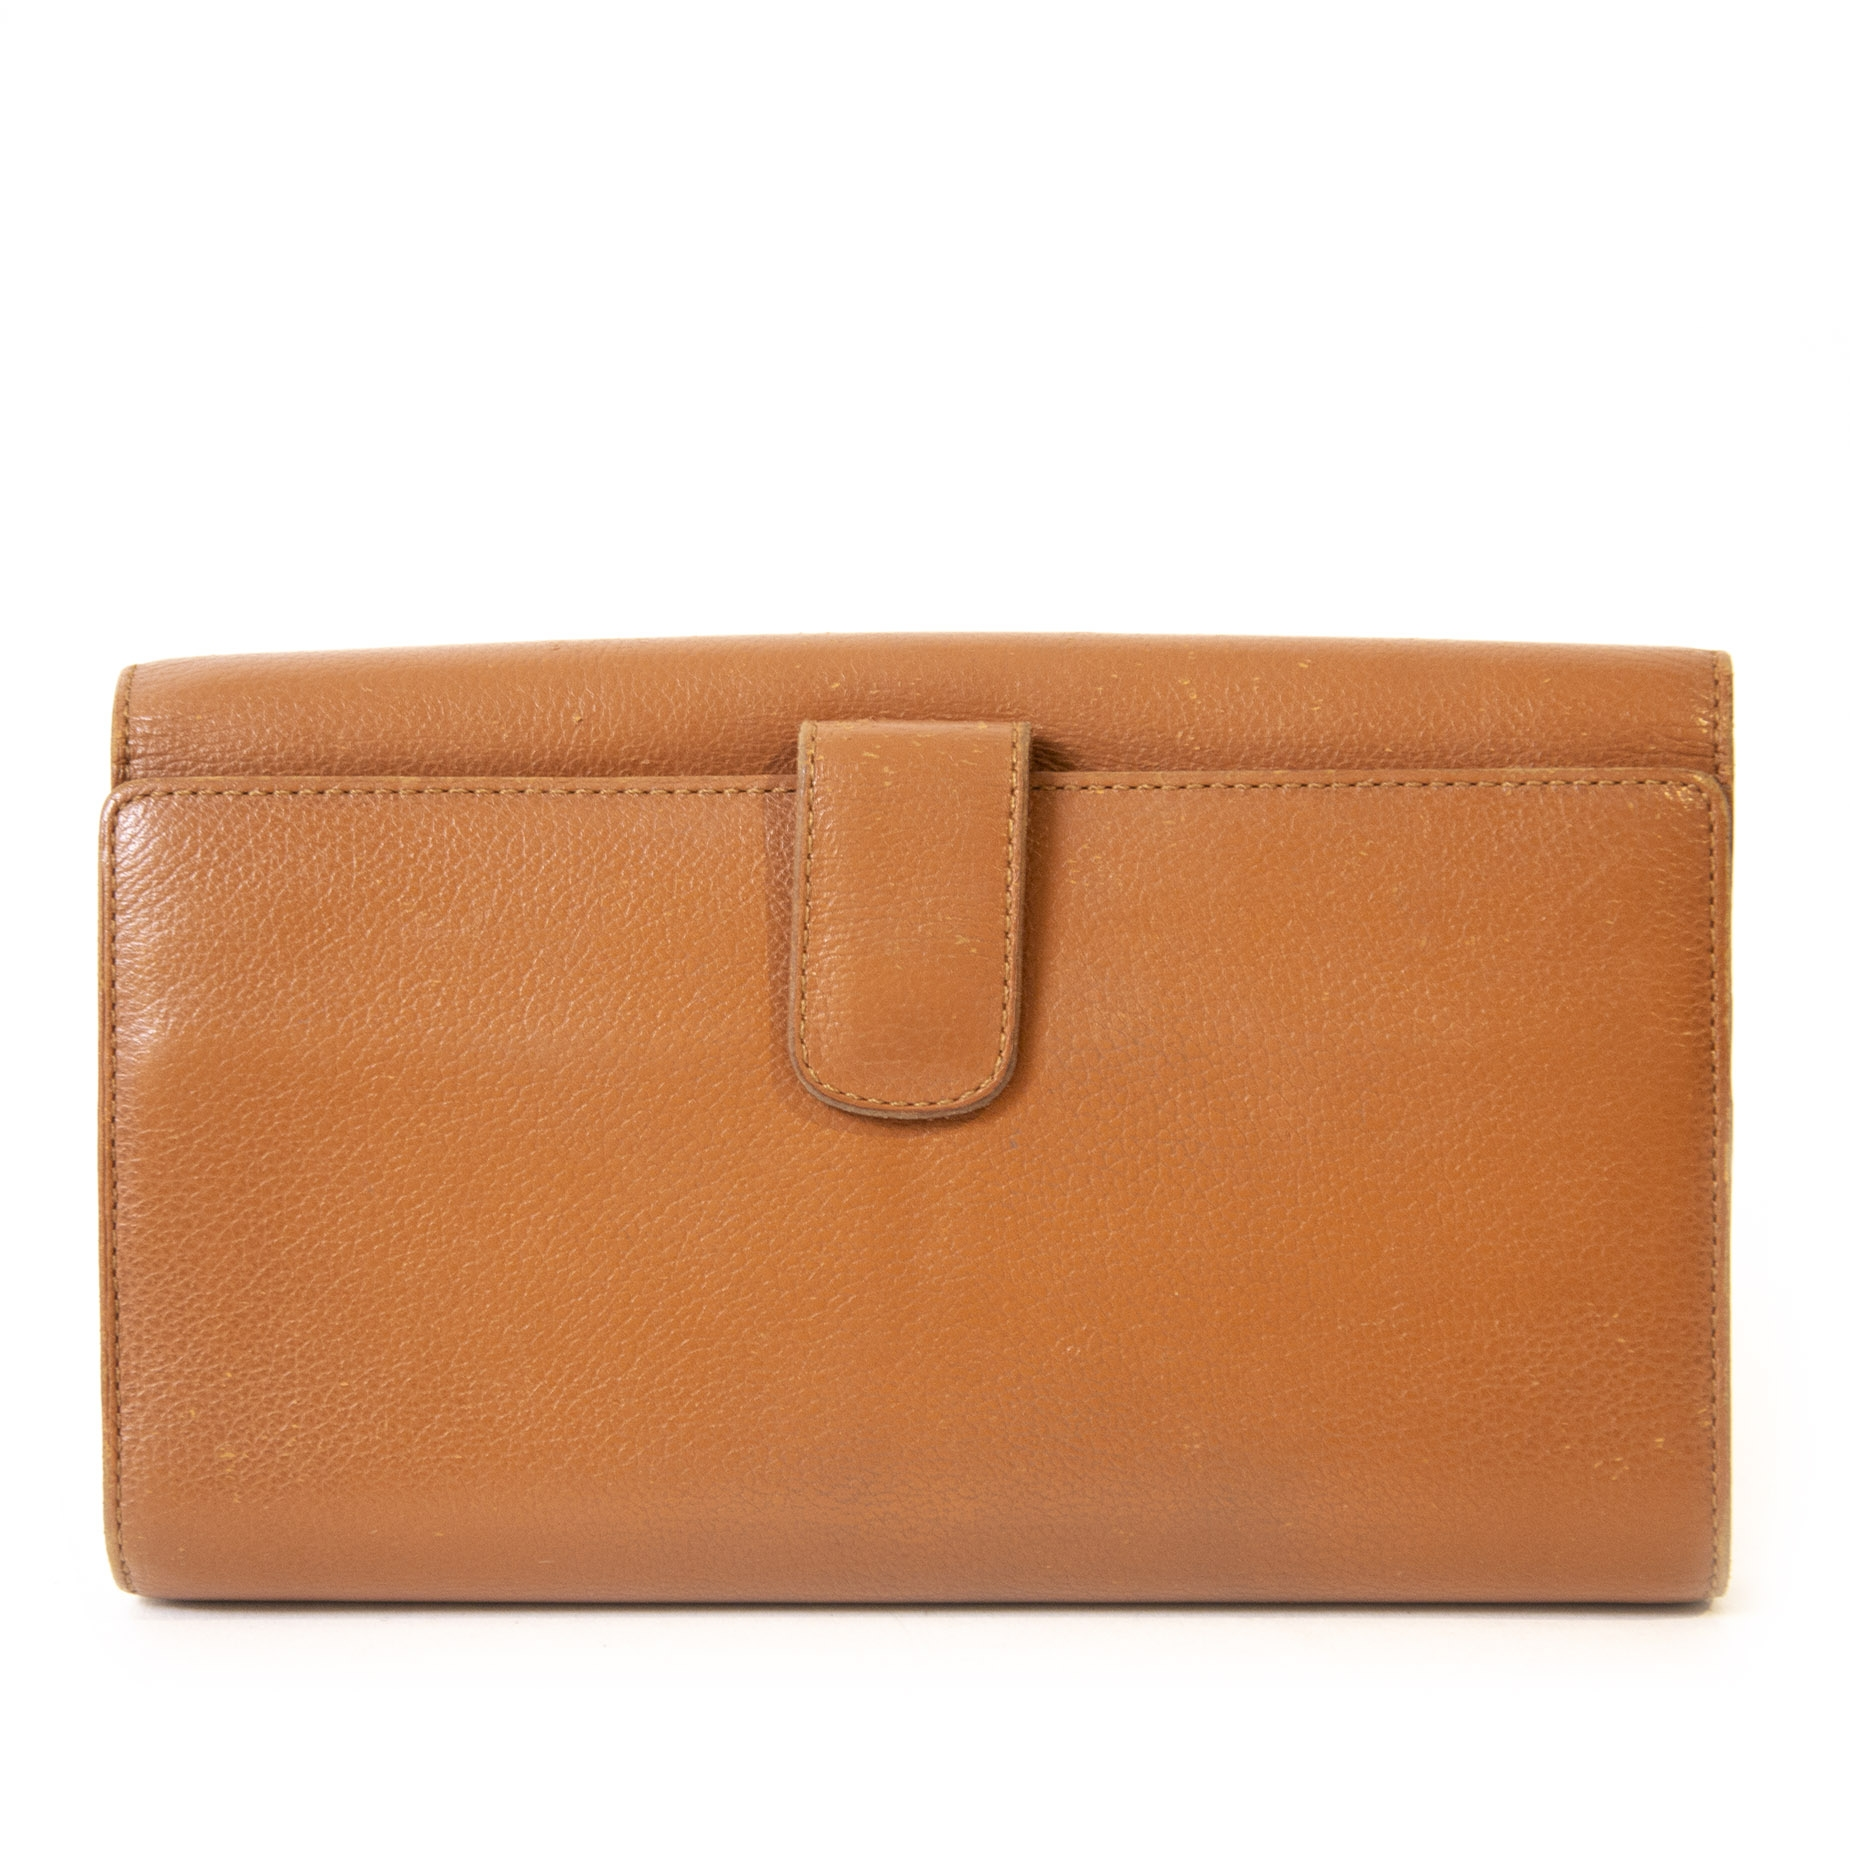 Authentic second-hand vintage Delvaux Camel Lingot Wallet buy online webshop LabelLOV